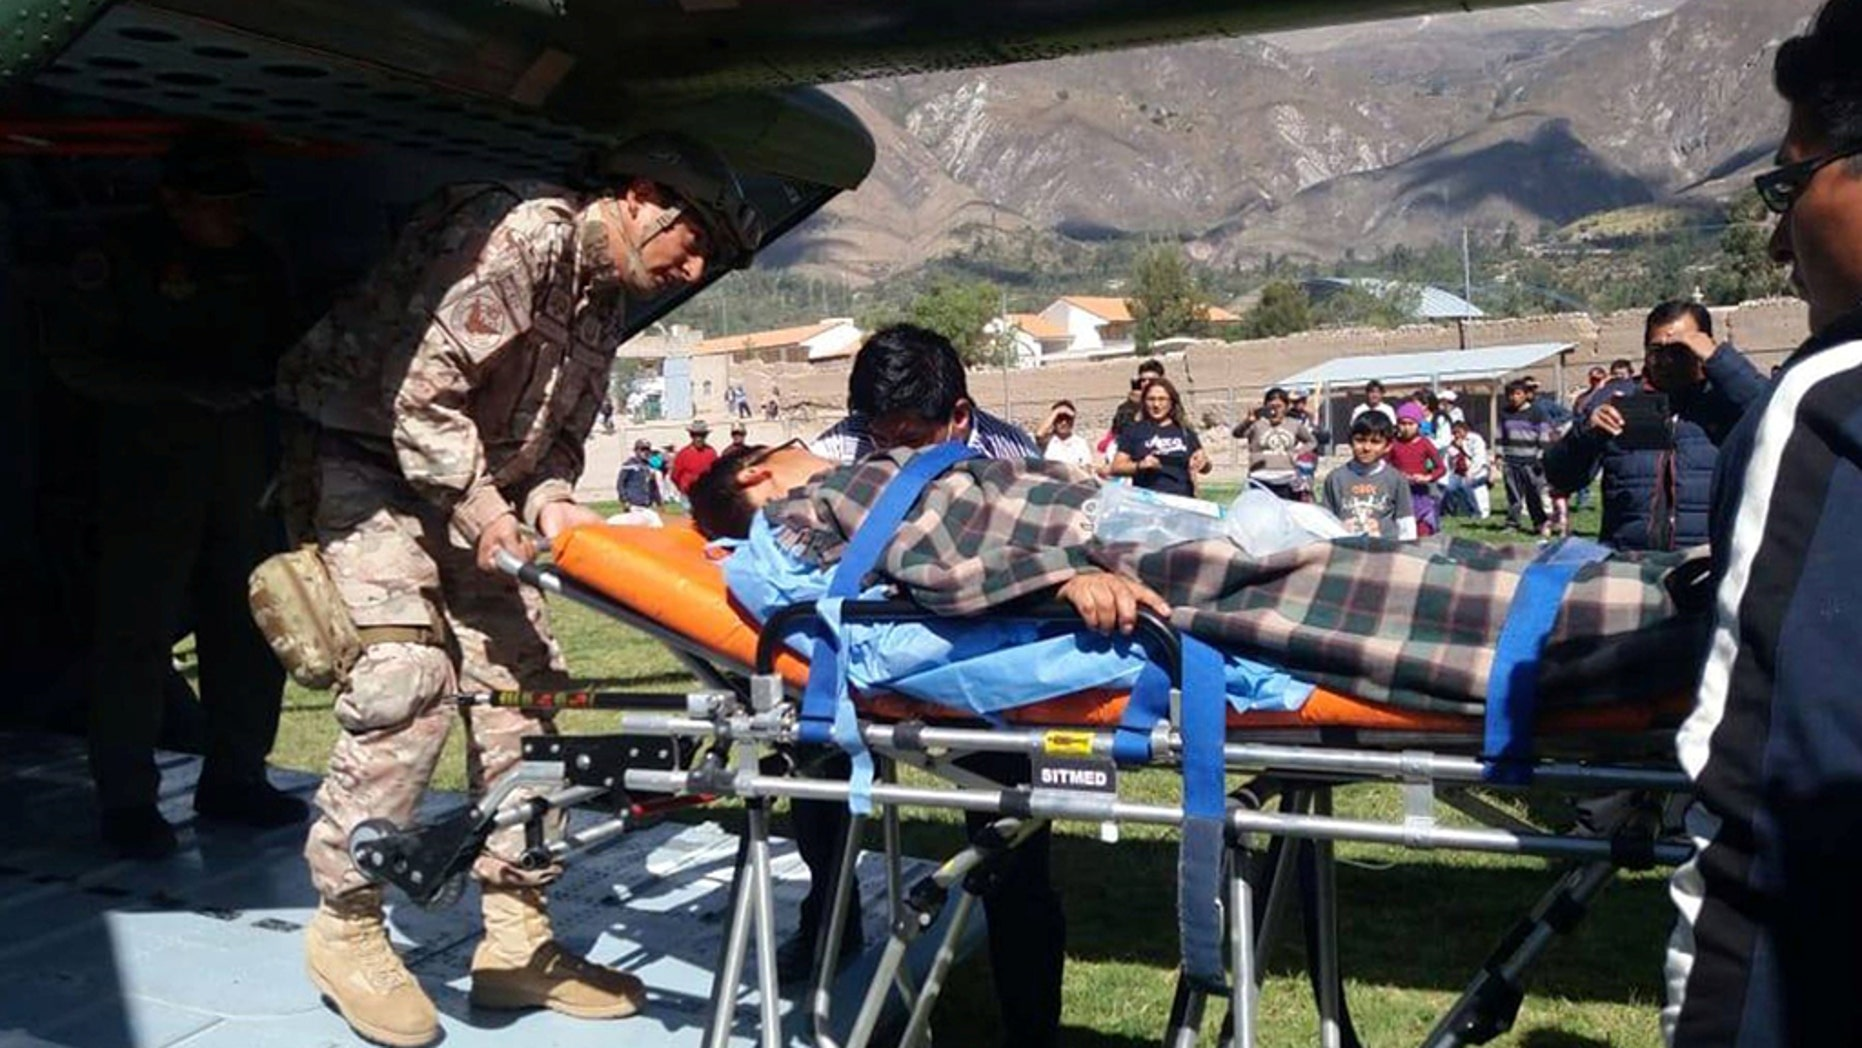 A person was taken to the hospital after eating contaminated food following a funeral ceremony in the Peruvian Andes.